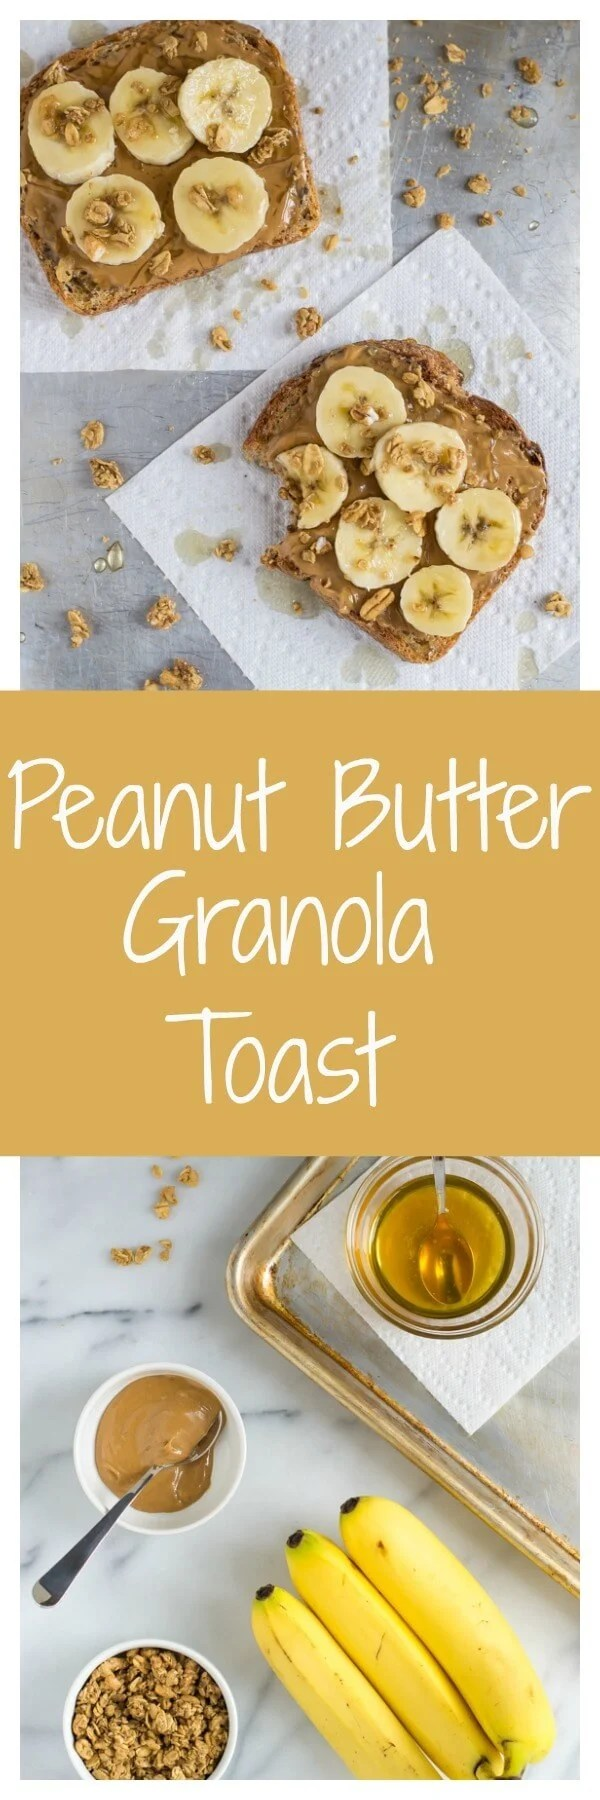 Peanut Butter Granola Toast. The best breakfast, afternoon snack or emergency dinner!